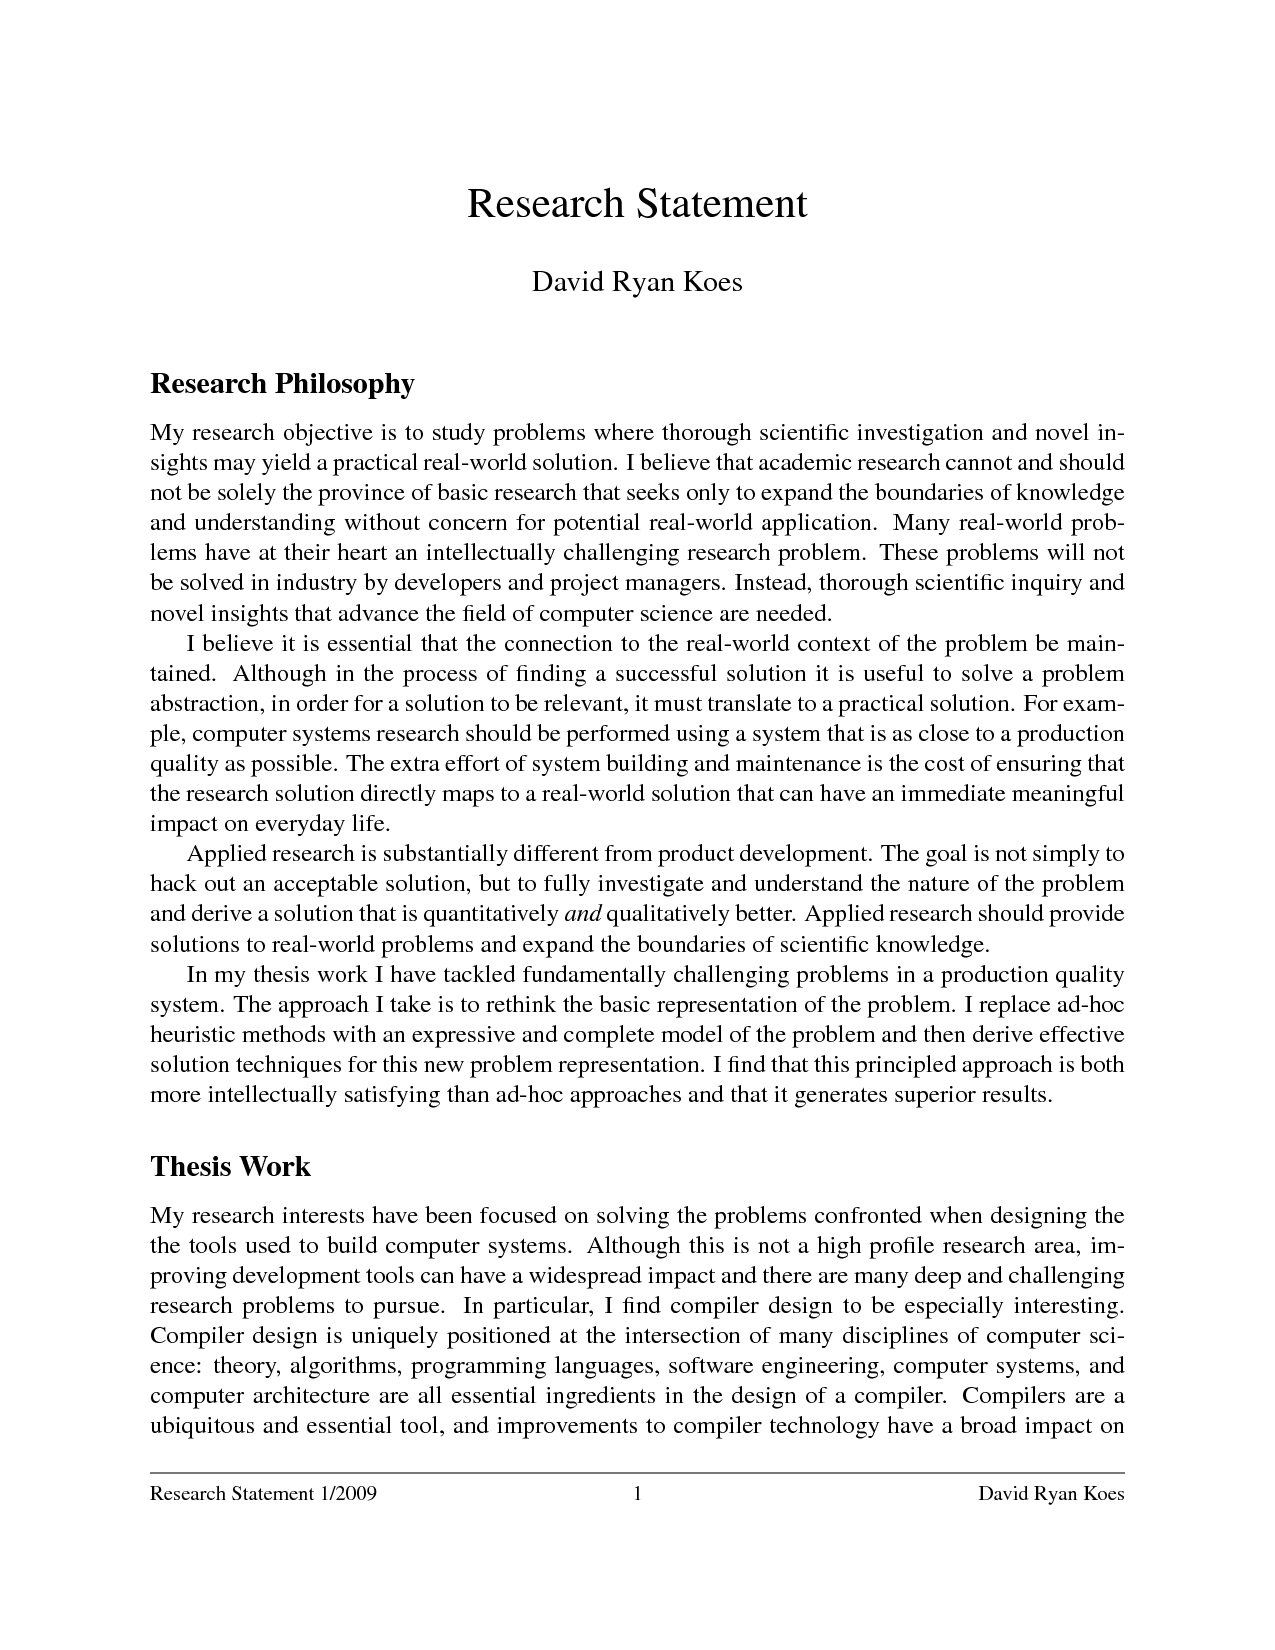 Research Statement Example Best Template Collection